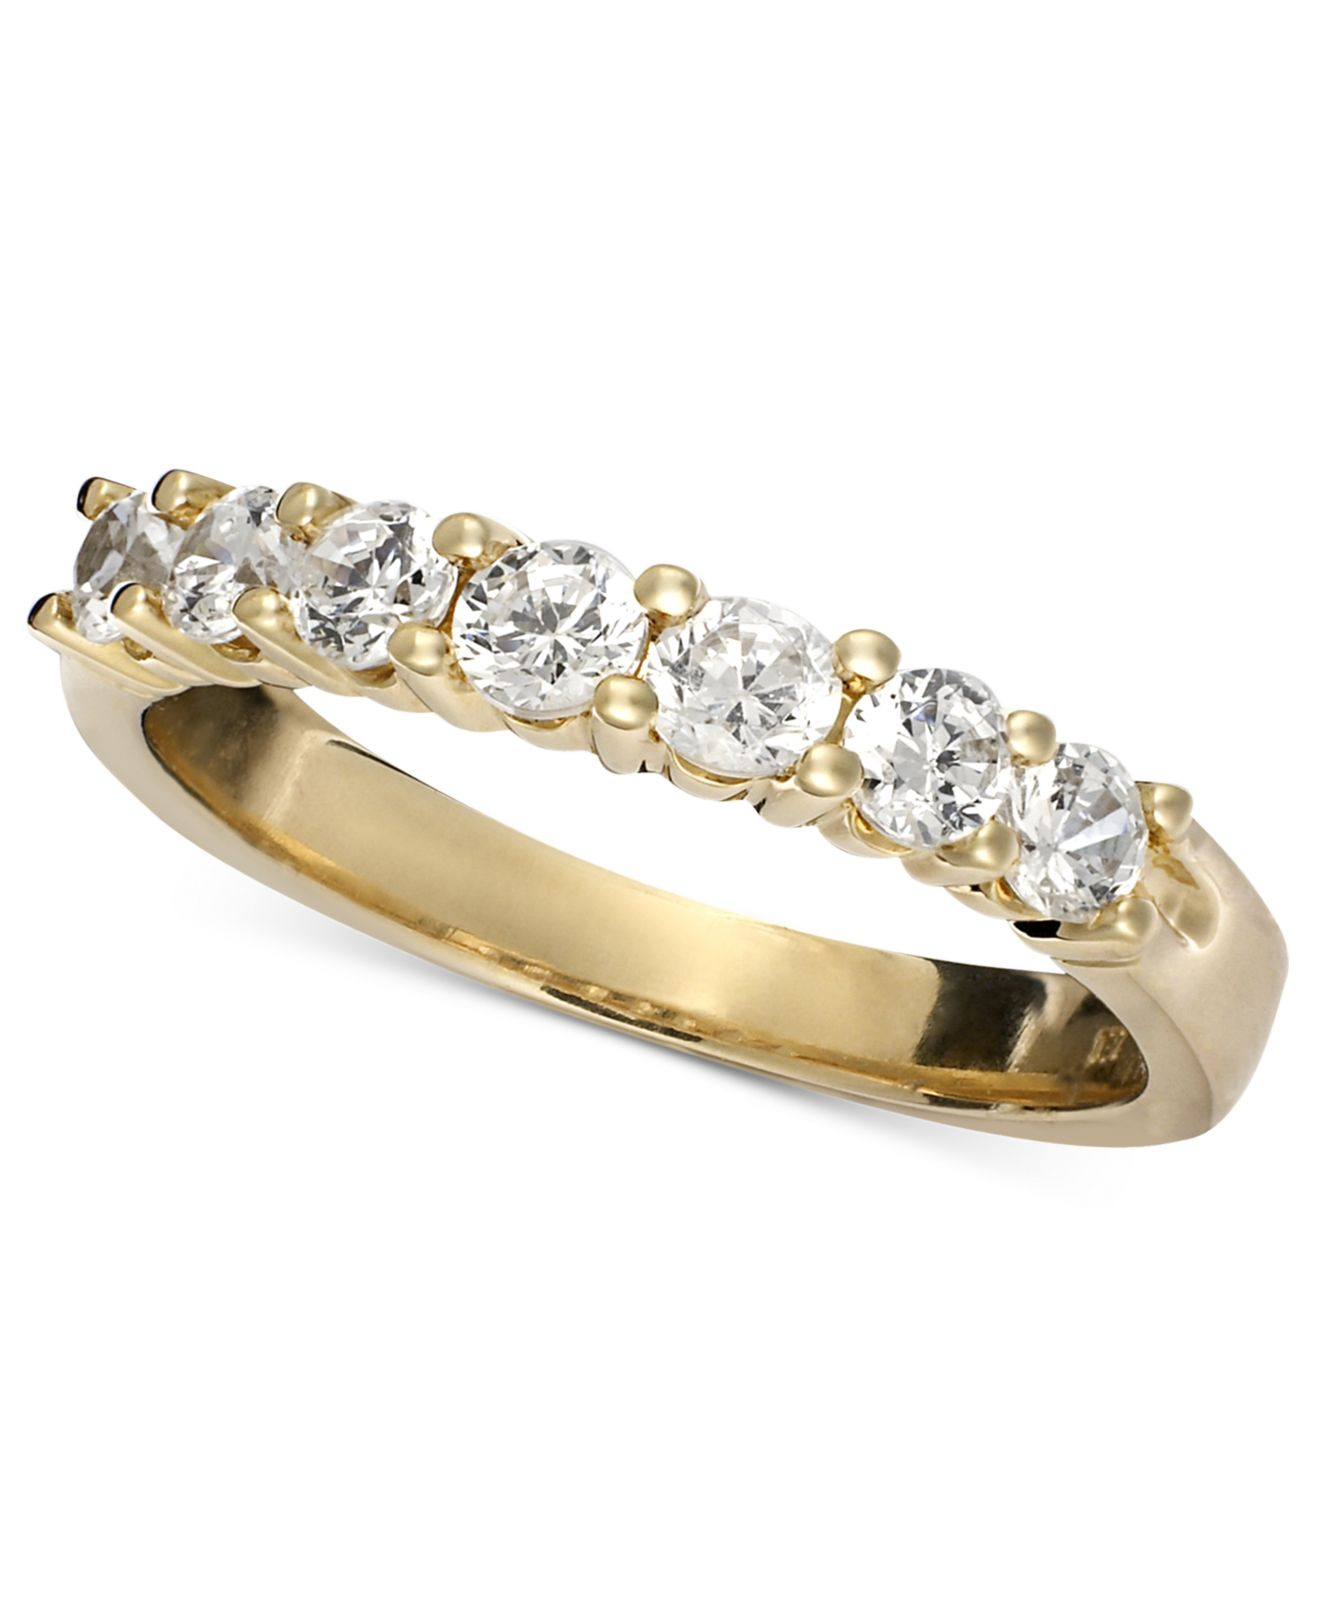 Macy's Seven Diamond Band Ring In 14k Yellow Or White Gold